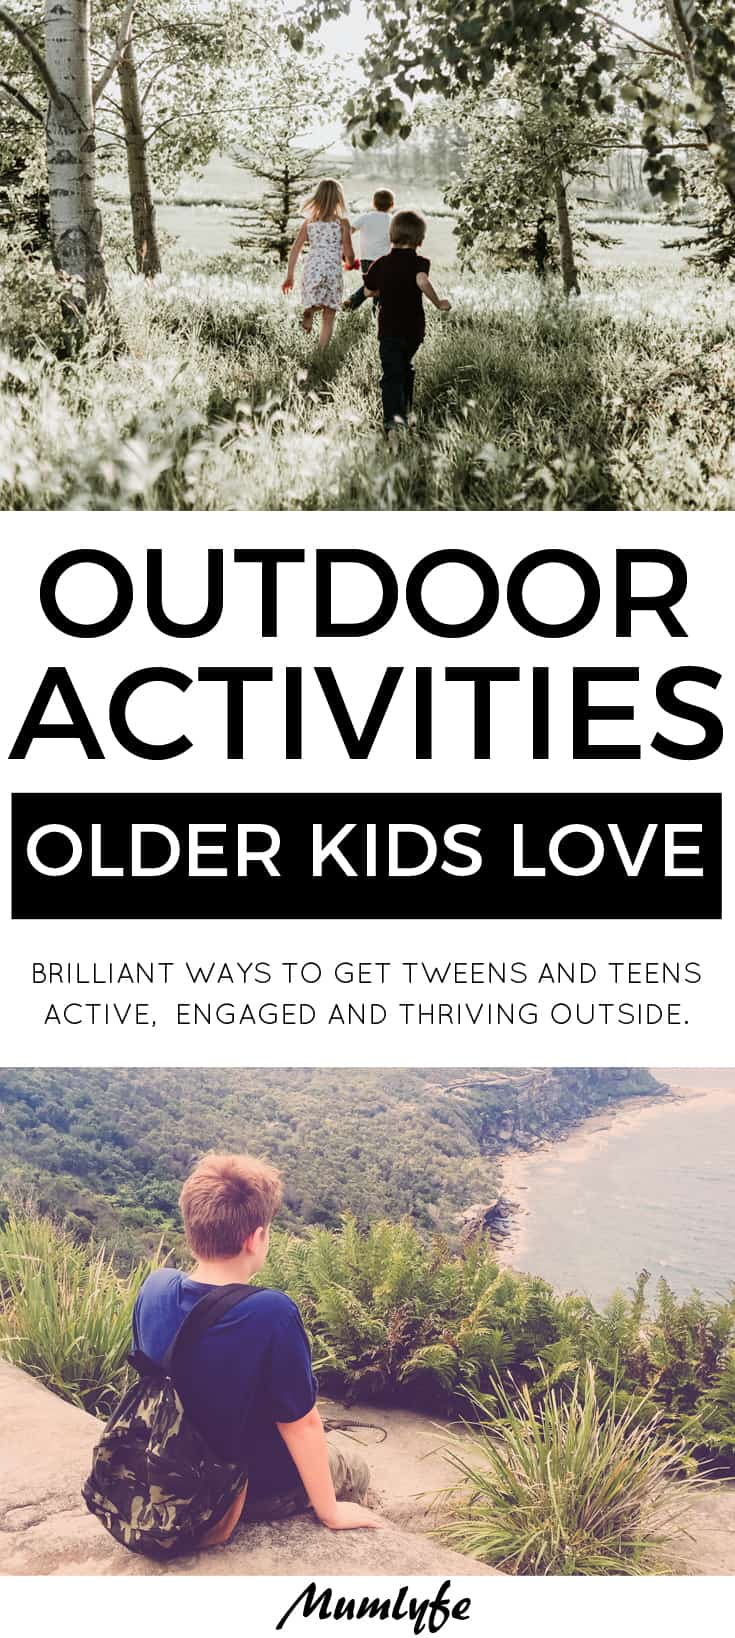 Outdoor activities for older kids - brilliant ways to get kids thriving outside